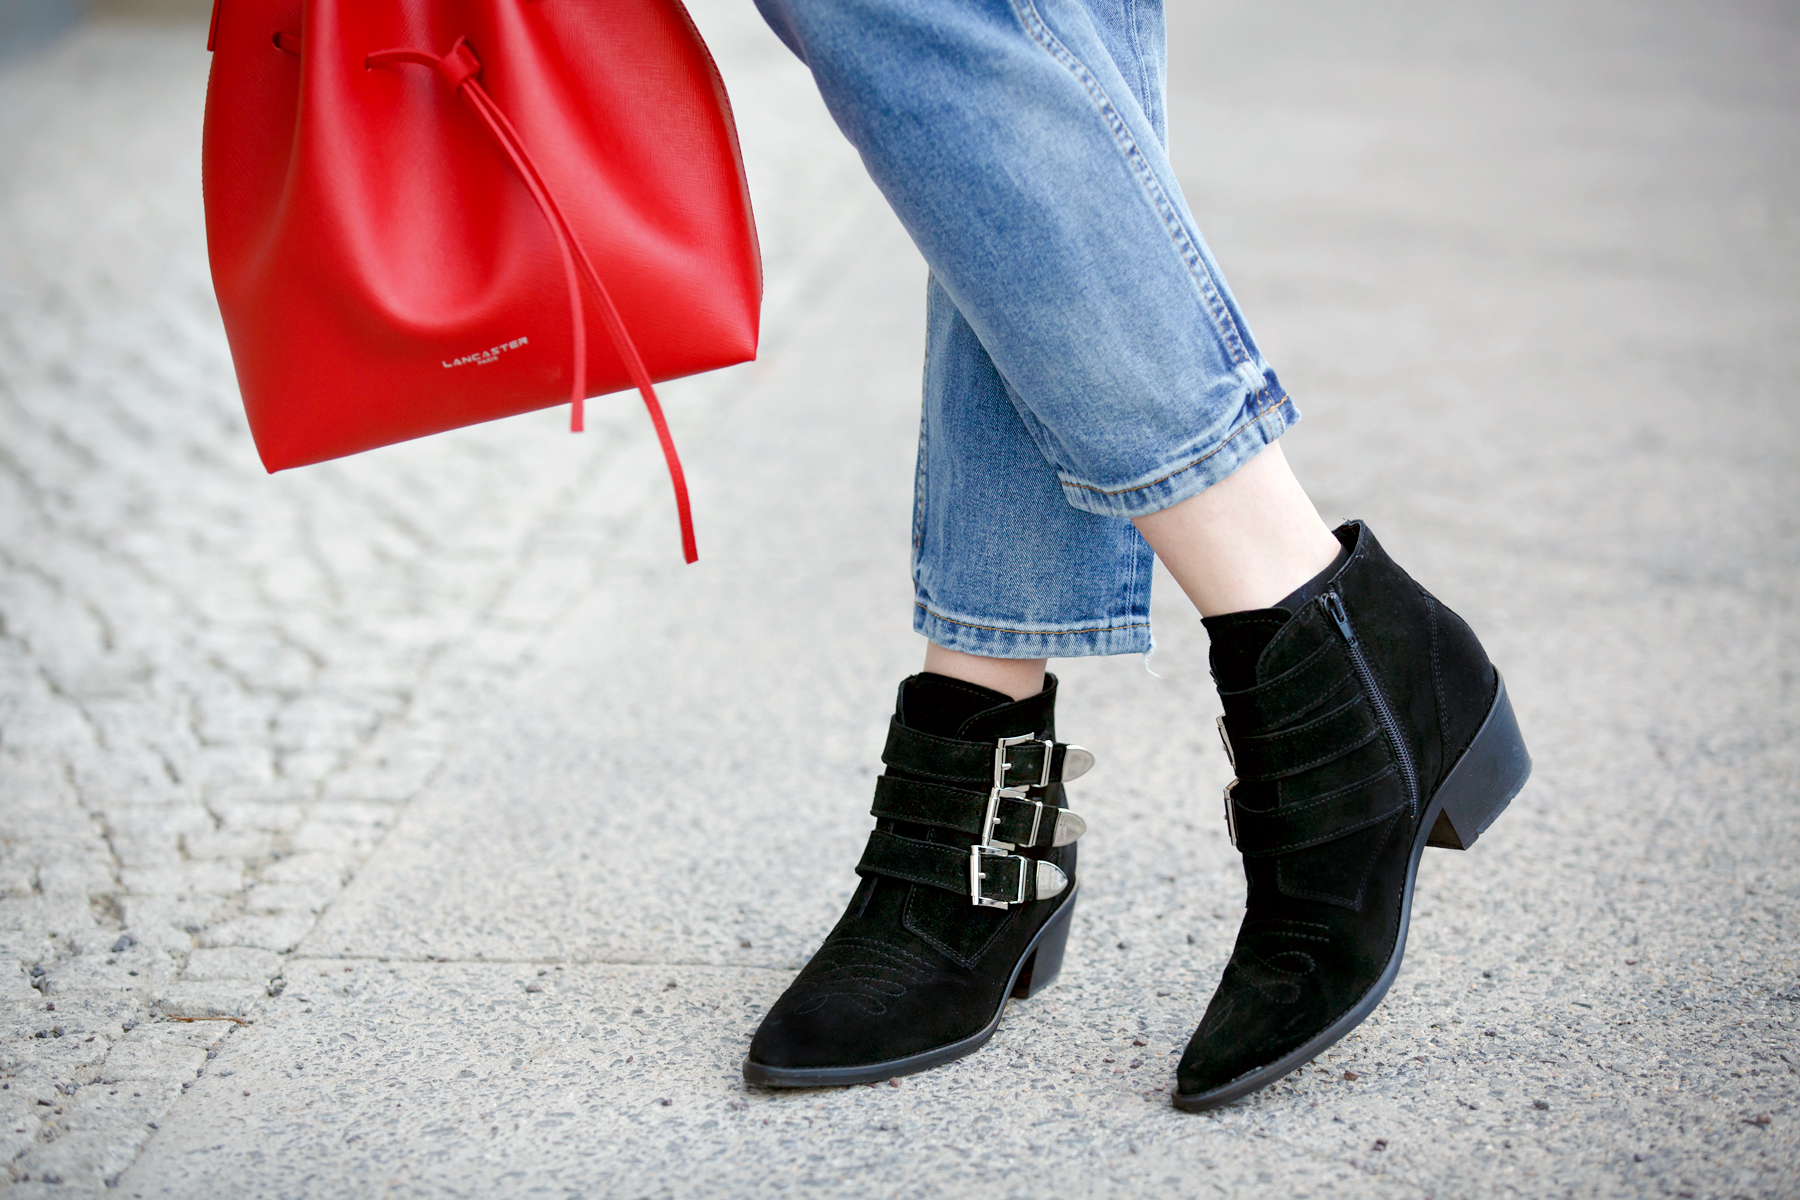 lancaster paris red bucket bag mansur gavriel lookalike patch boyfriend jeans mango fake fur coat asos black sacha booties ankle boots chloe suzanna prada sunglasses luxury style blogger cats & dogs blog ricarda schernus 3